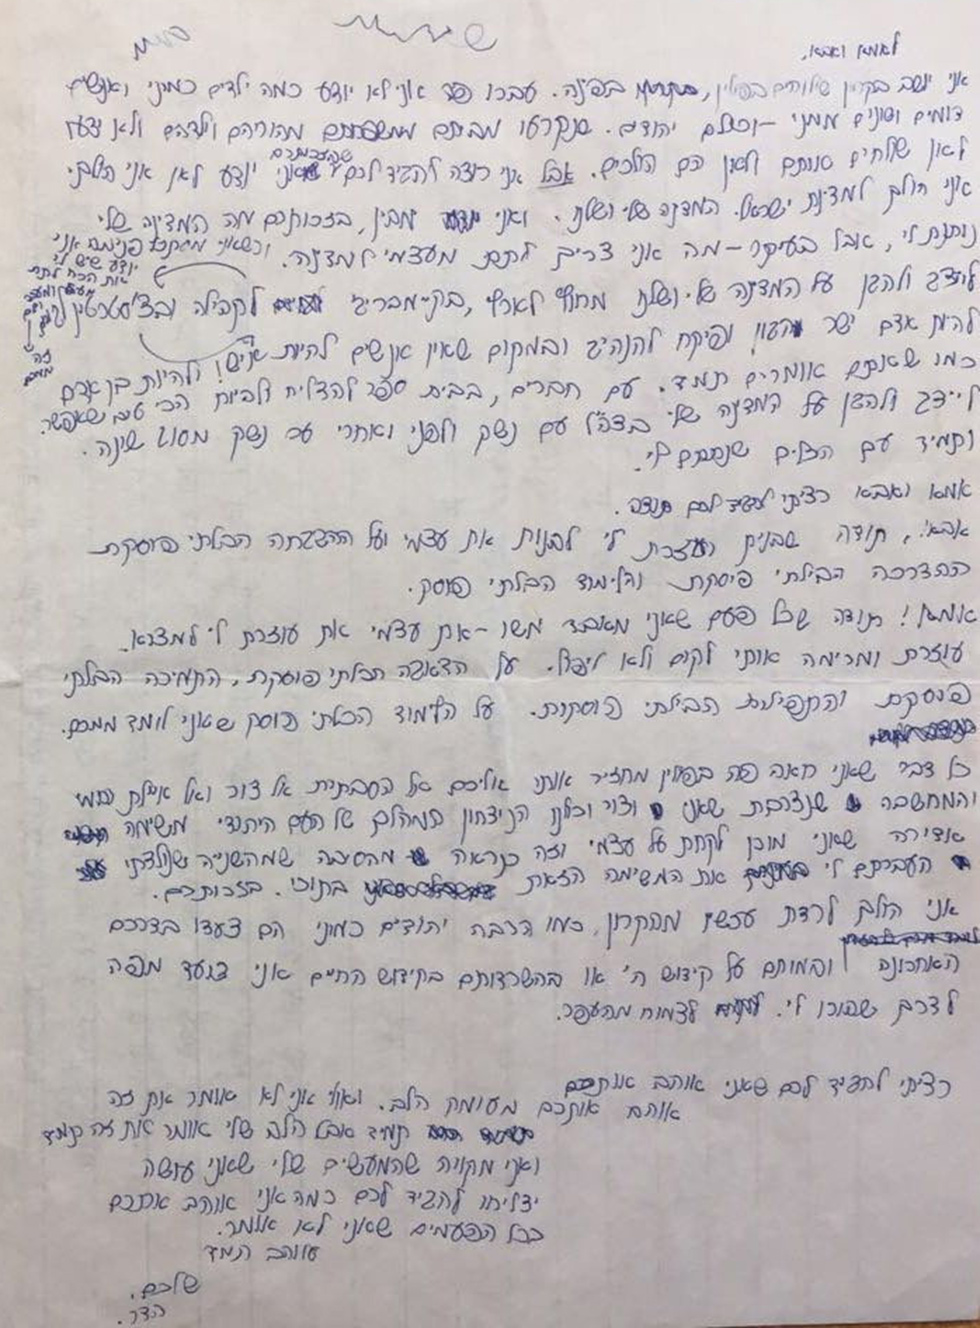 Hadar Goldin's letter to his parents